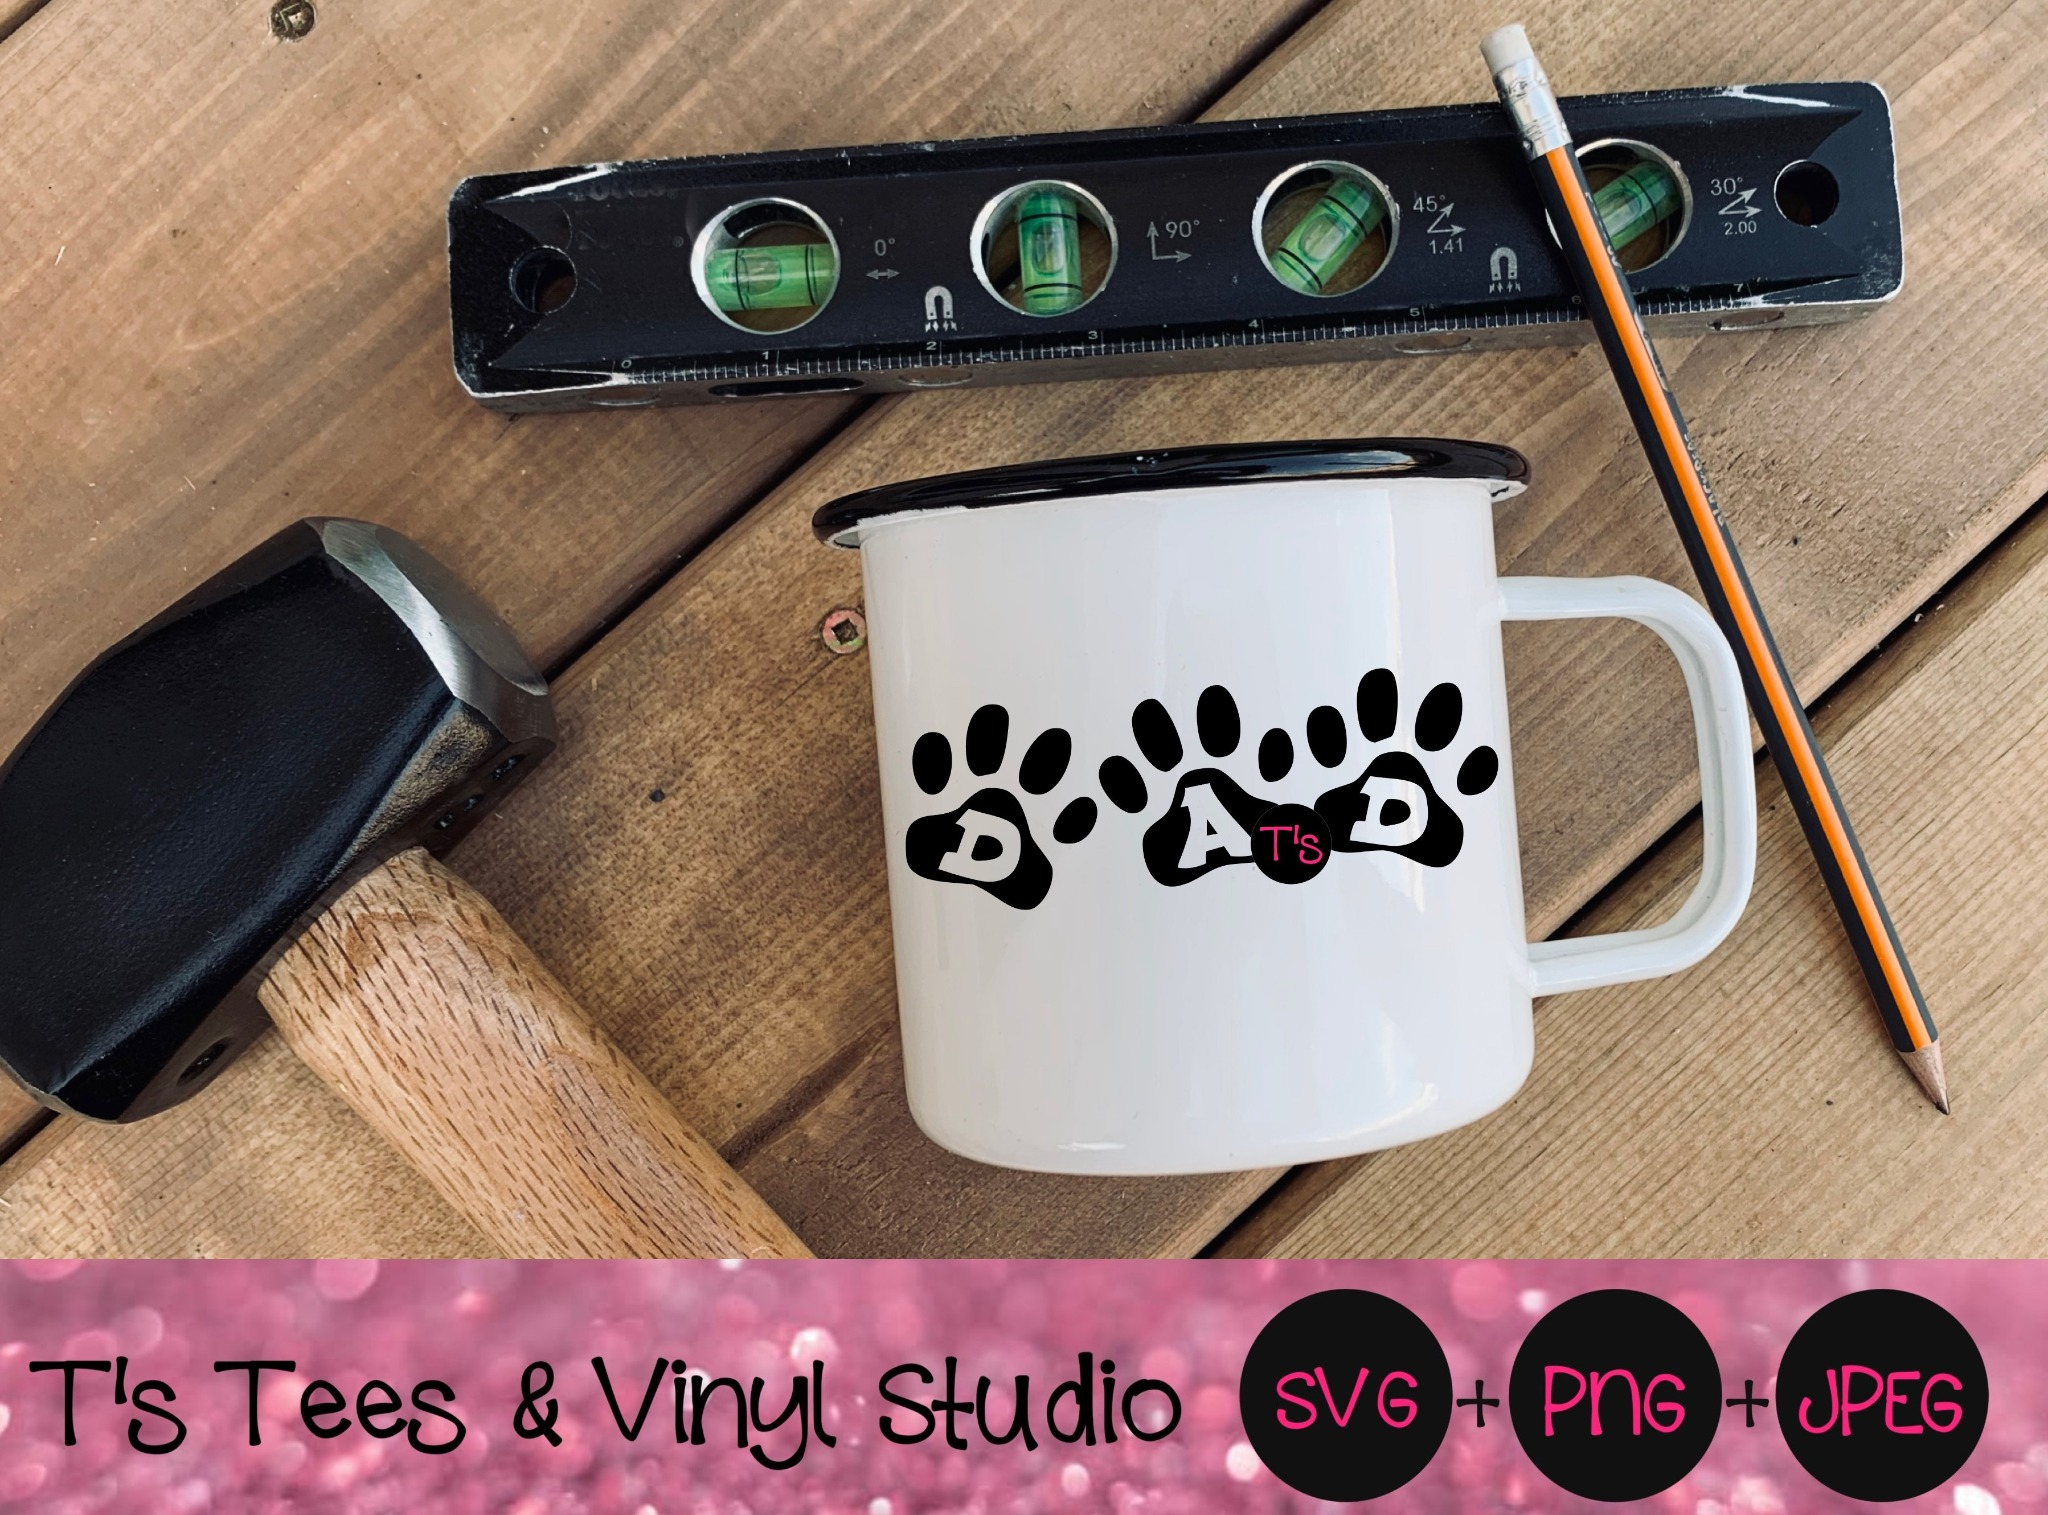 Dad Svg, Father's Day Svg, Paw Print Svg, Best Dad Ever Svg, Best Dad Svg, Furbaby Dad Svg, Furbaby